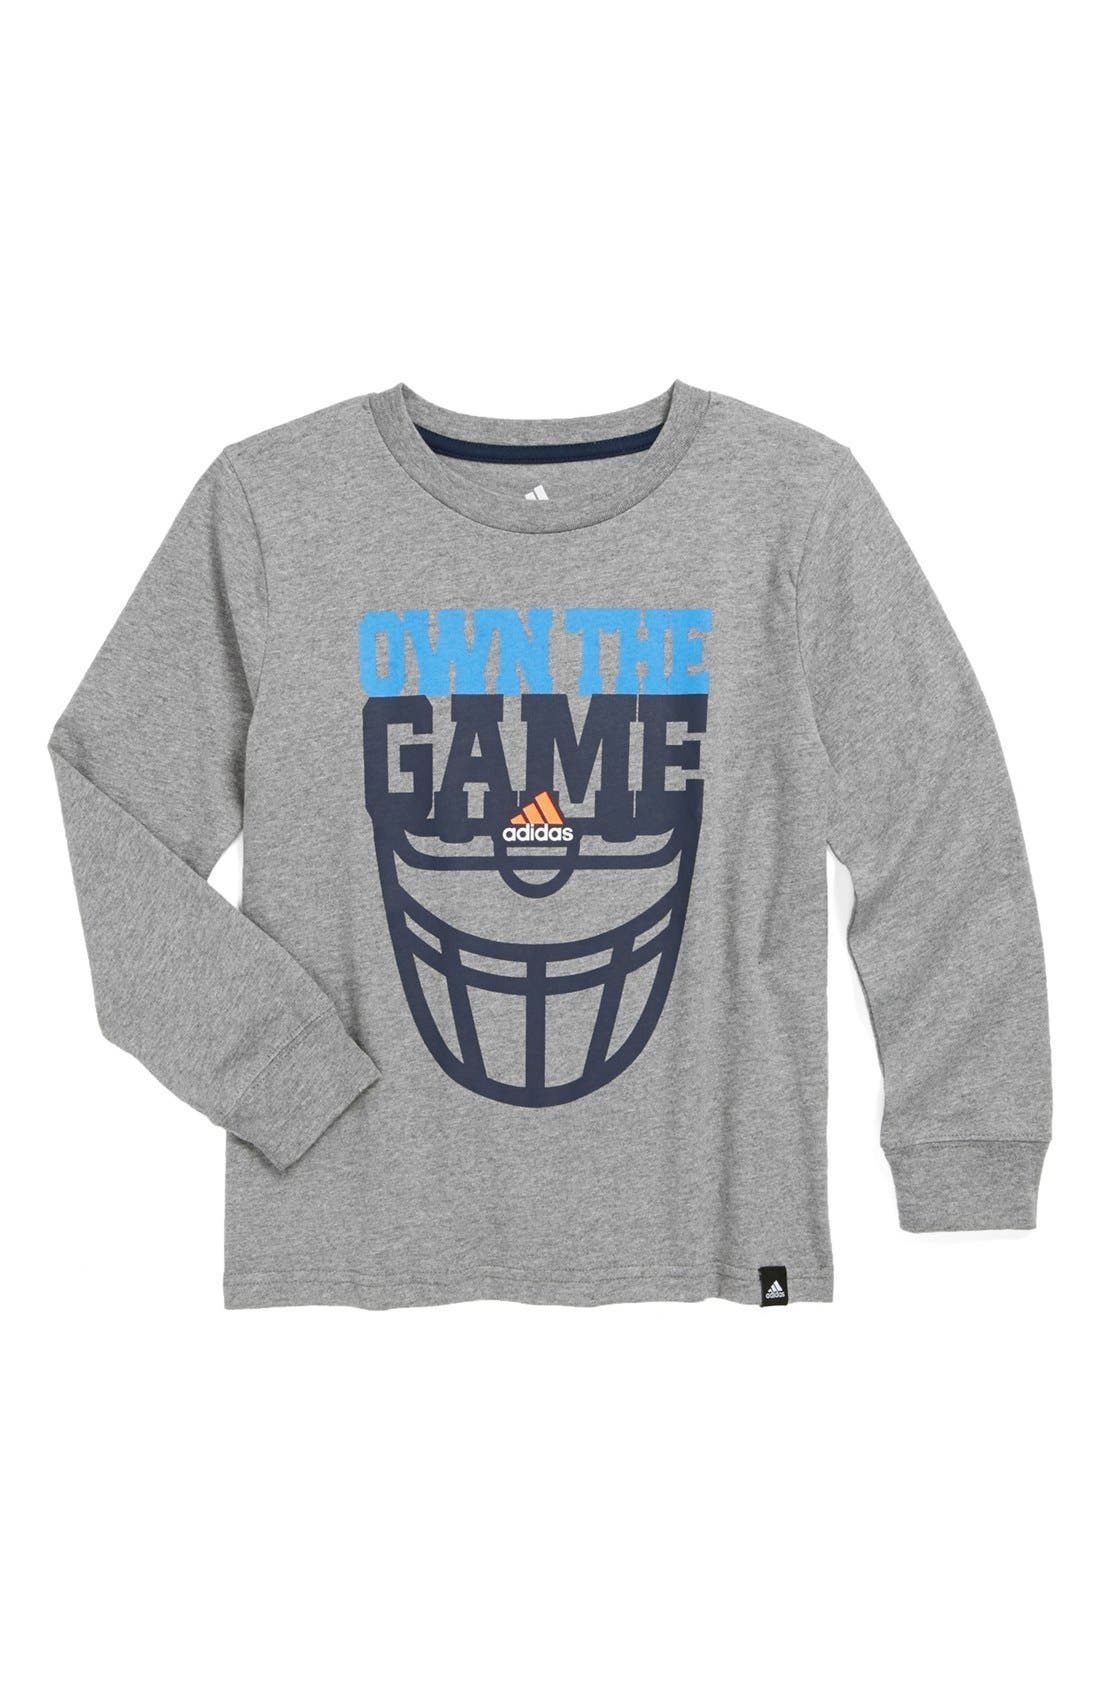 Alternate Image 1 Selected - adidas 'Own the Game' Long Sleeve Shirt (Little Boys)